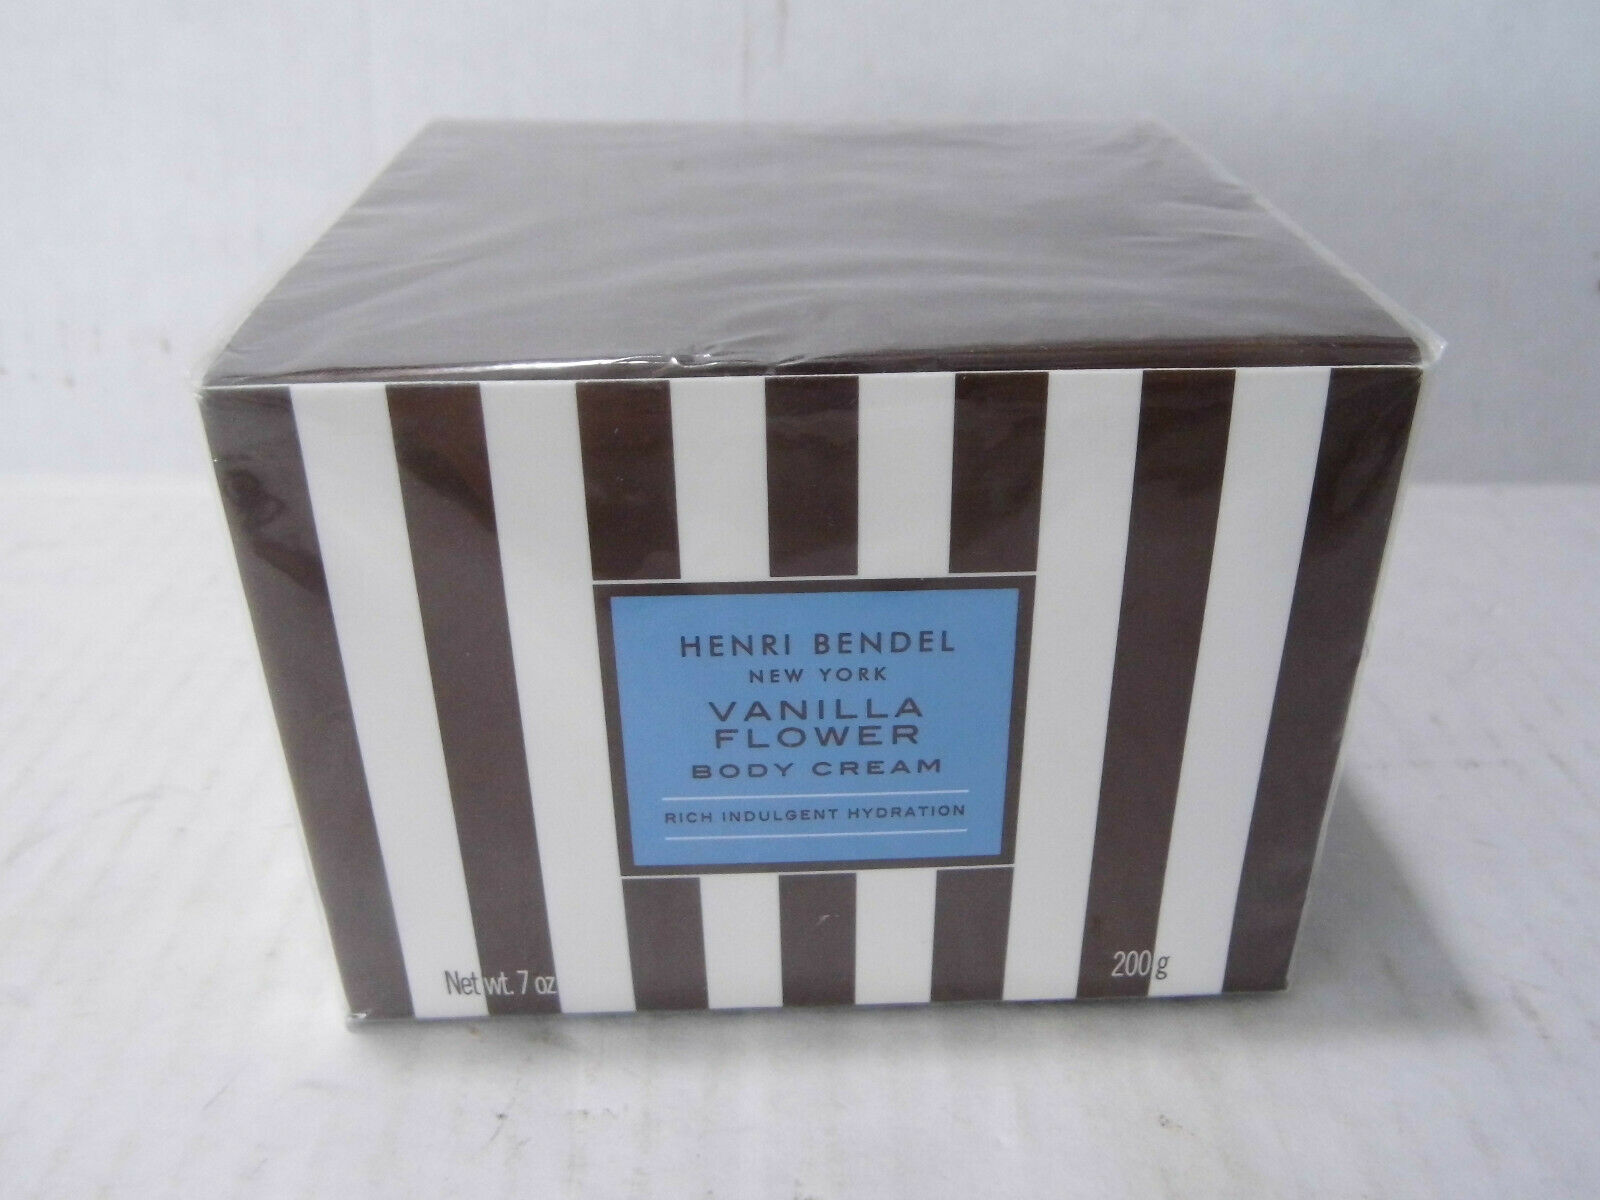 HENRI BENDEL Vanilla Flower Body Cream 7oz NEW SEALED Retired